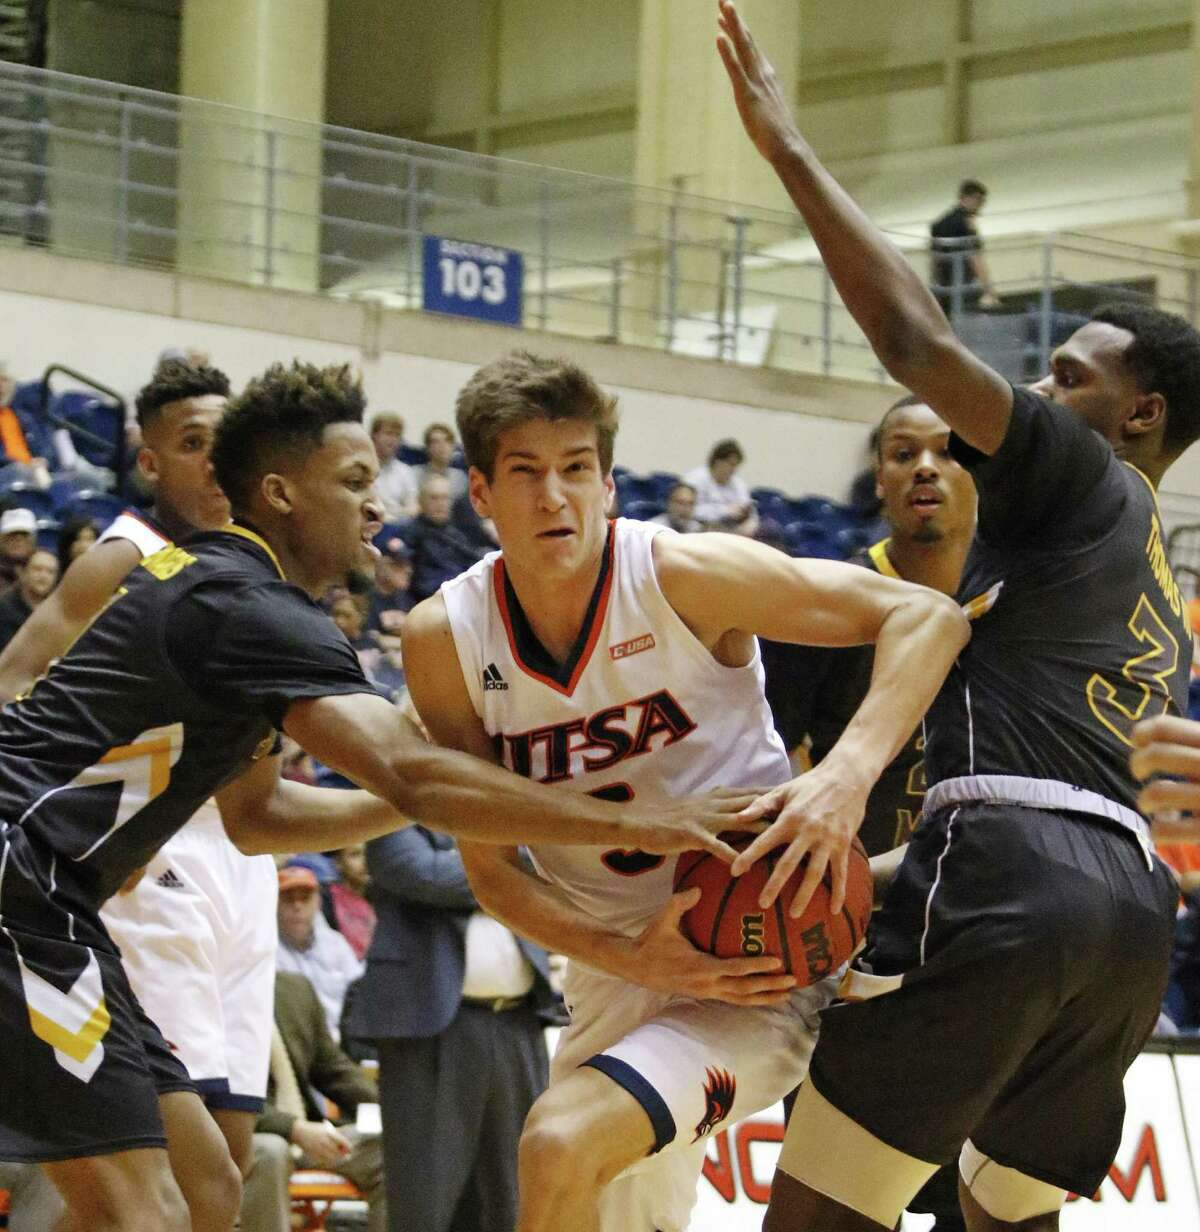 UTSA?•s Giovanni De Nicolao drives on Southern?•s Mississippi?•s players on Thursday, January 19, 2017 at Convocation Center.